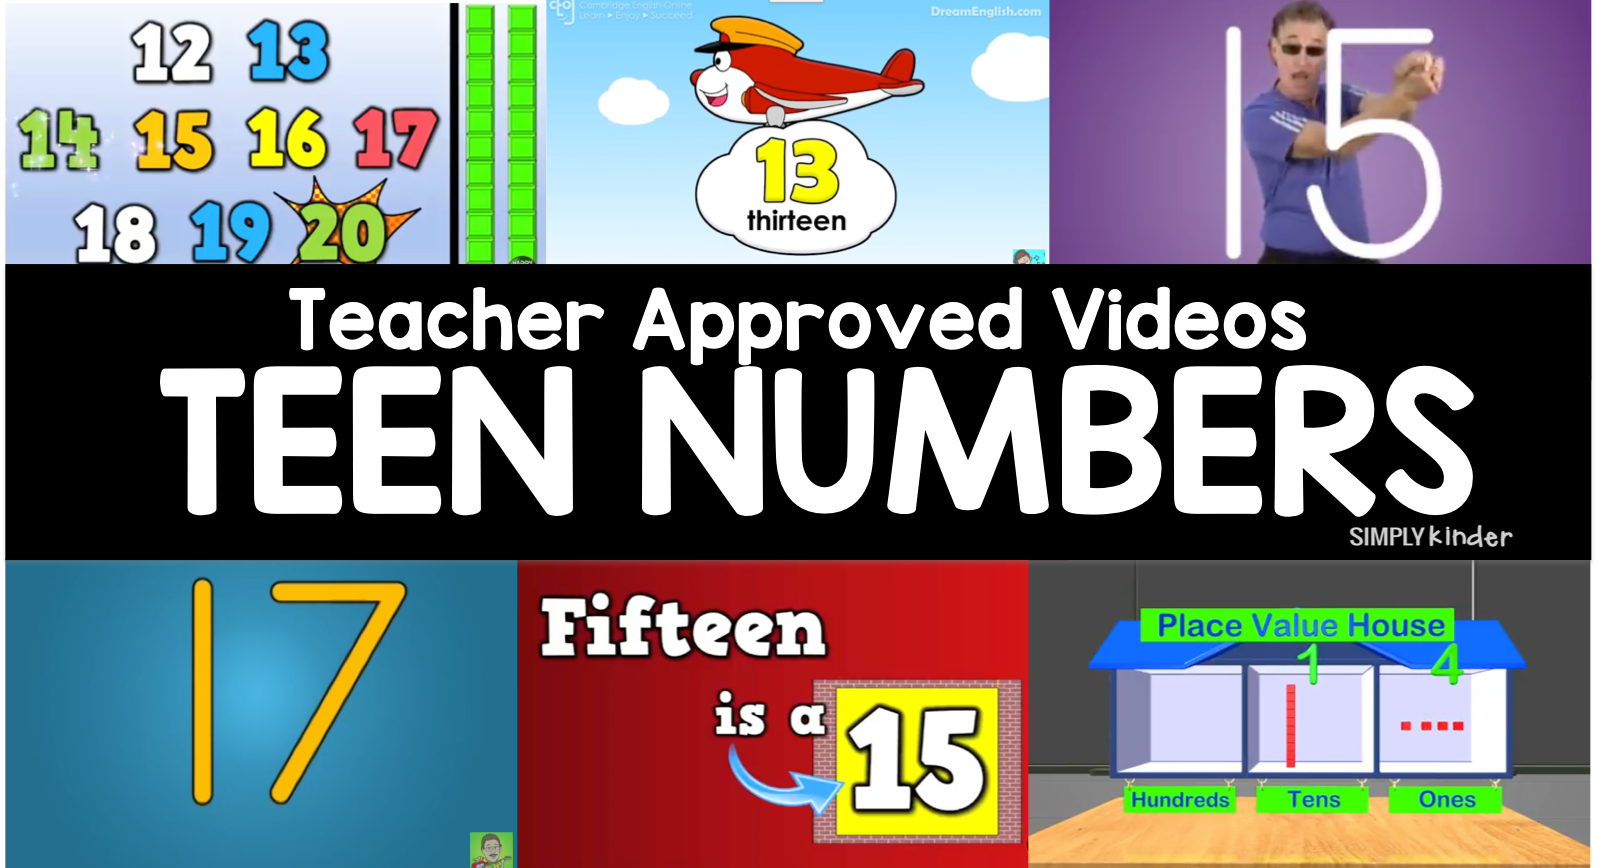 Teacher-Approved Teen Video List